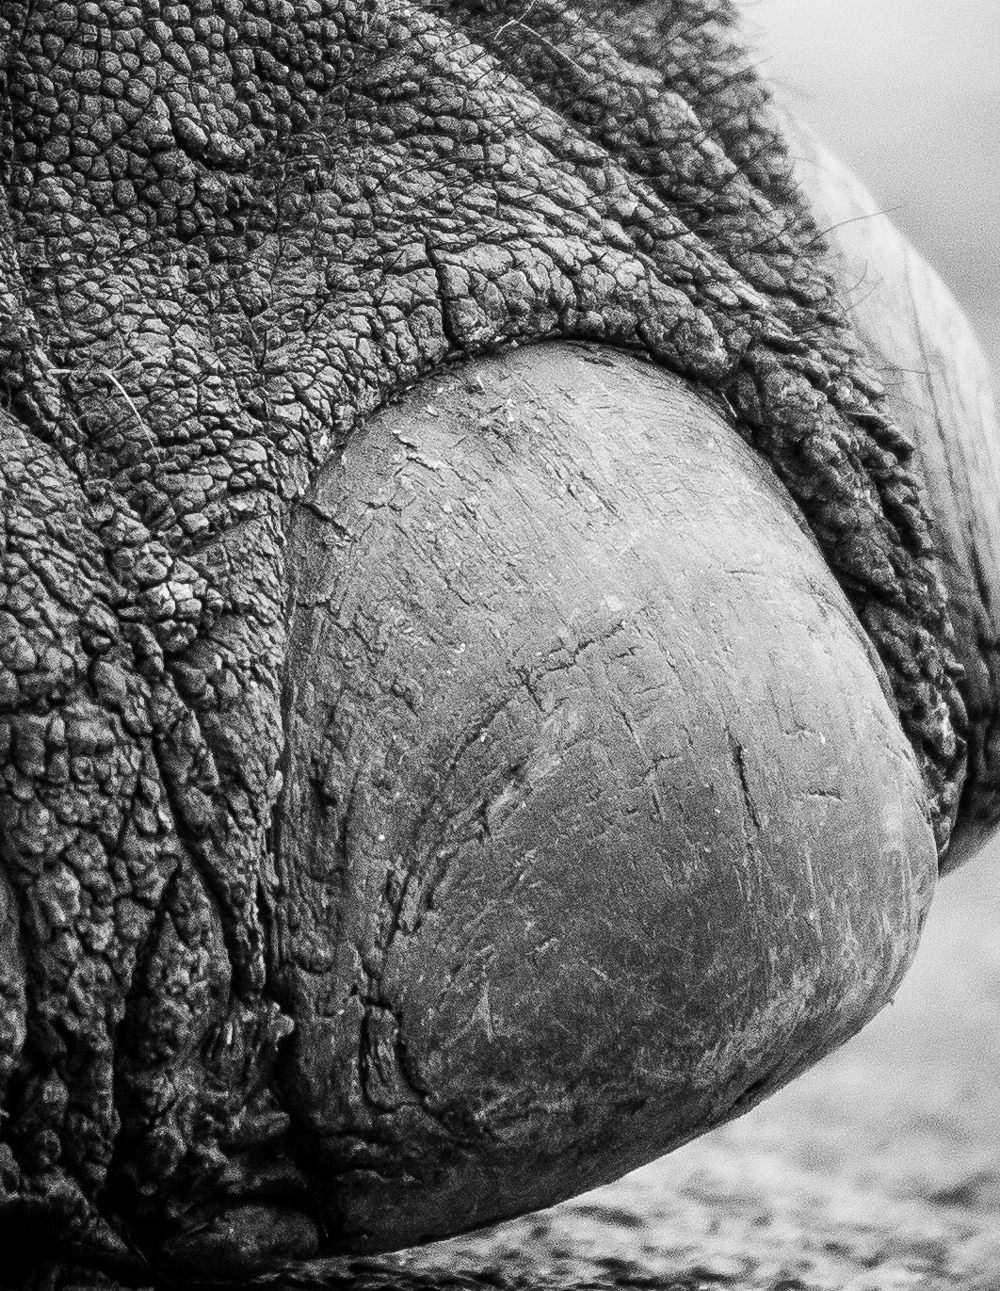 The toe of a giant ©Sally Hinton